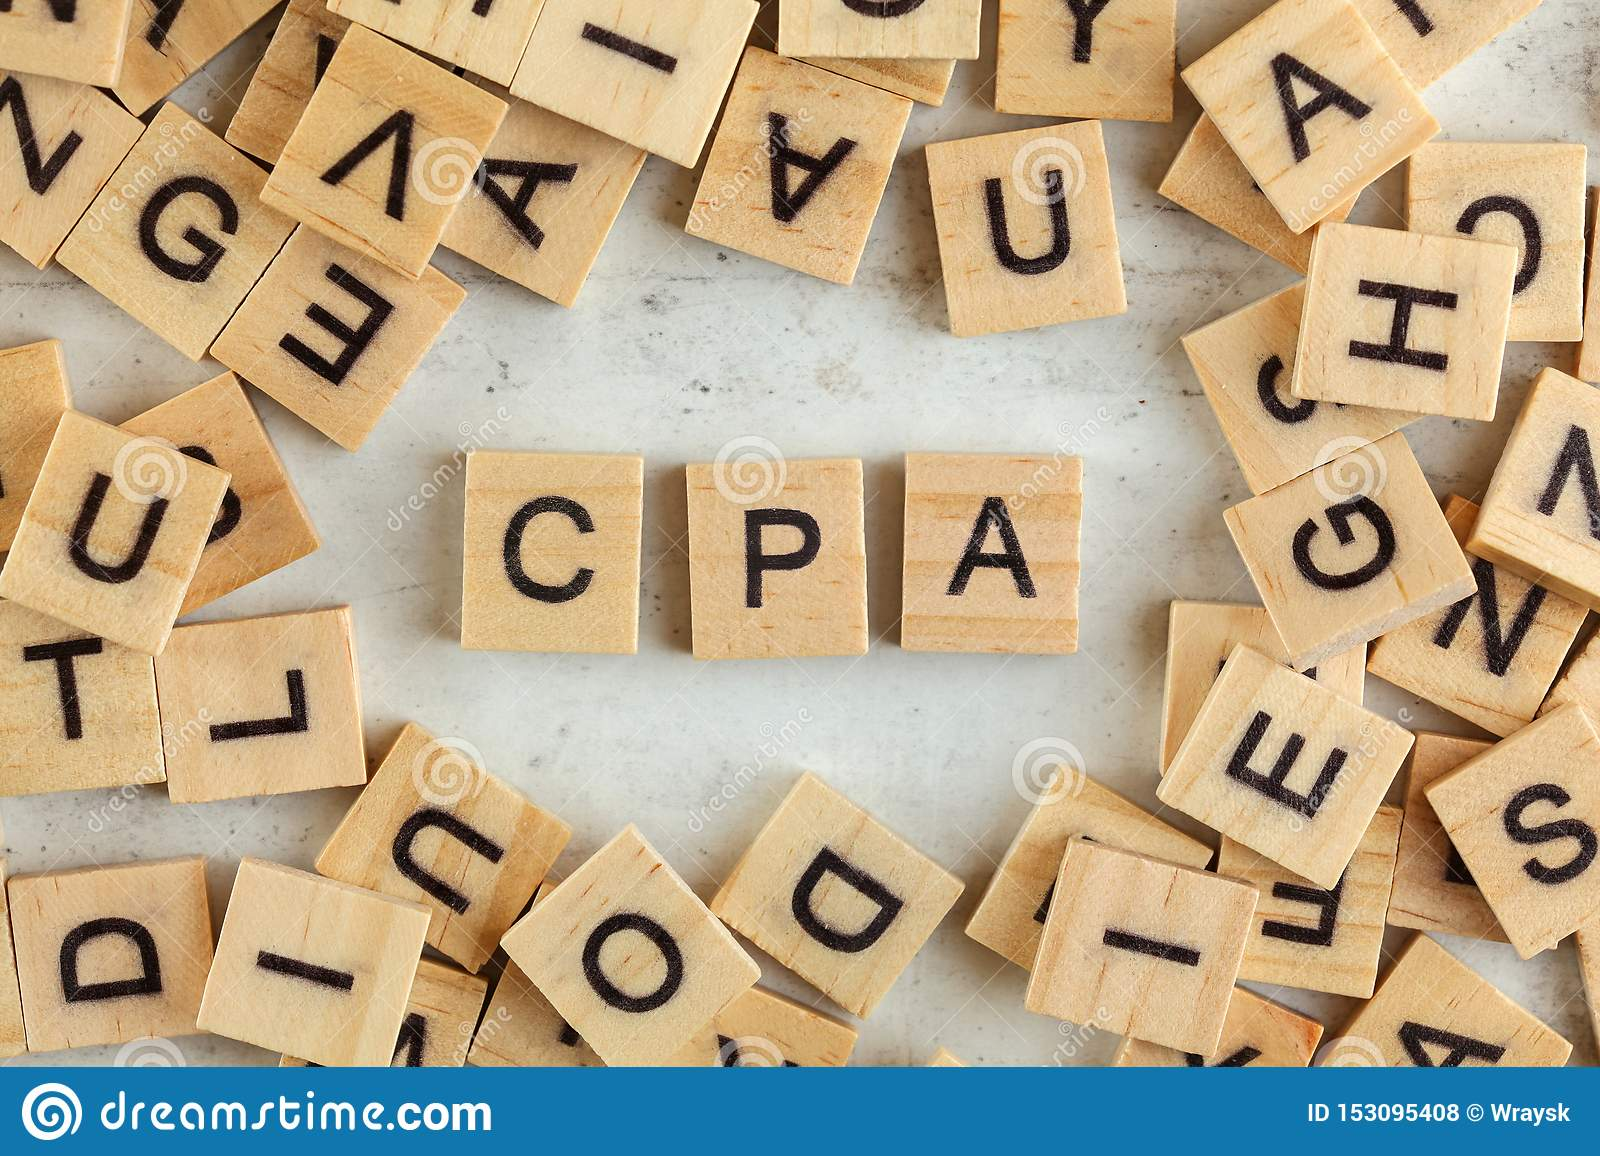 Top down view, pile of square wooden blocks with letters CPA stands for Cost per Action / Acquisition on white board